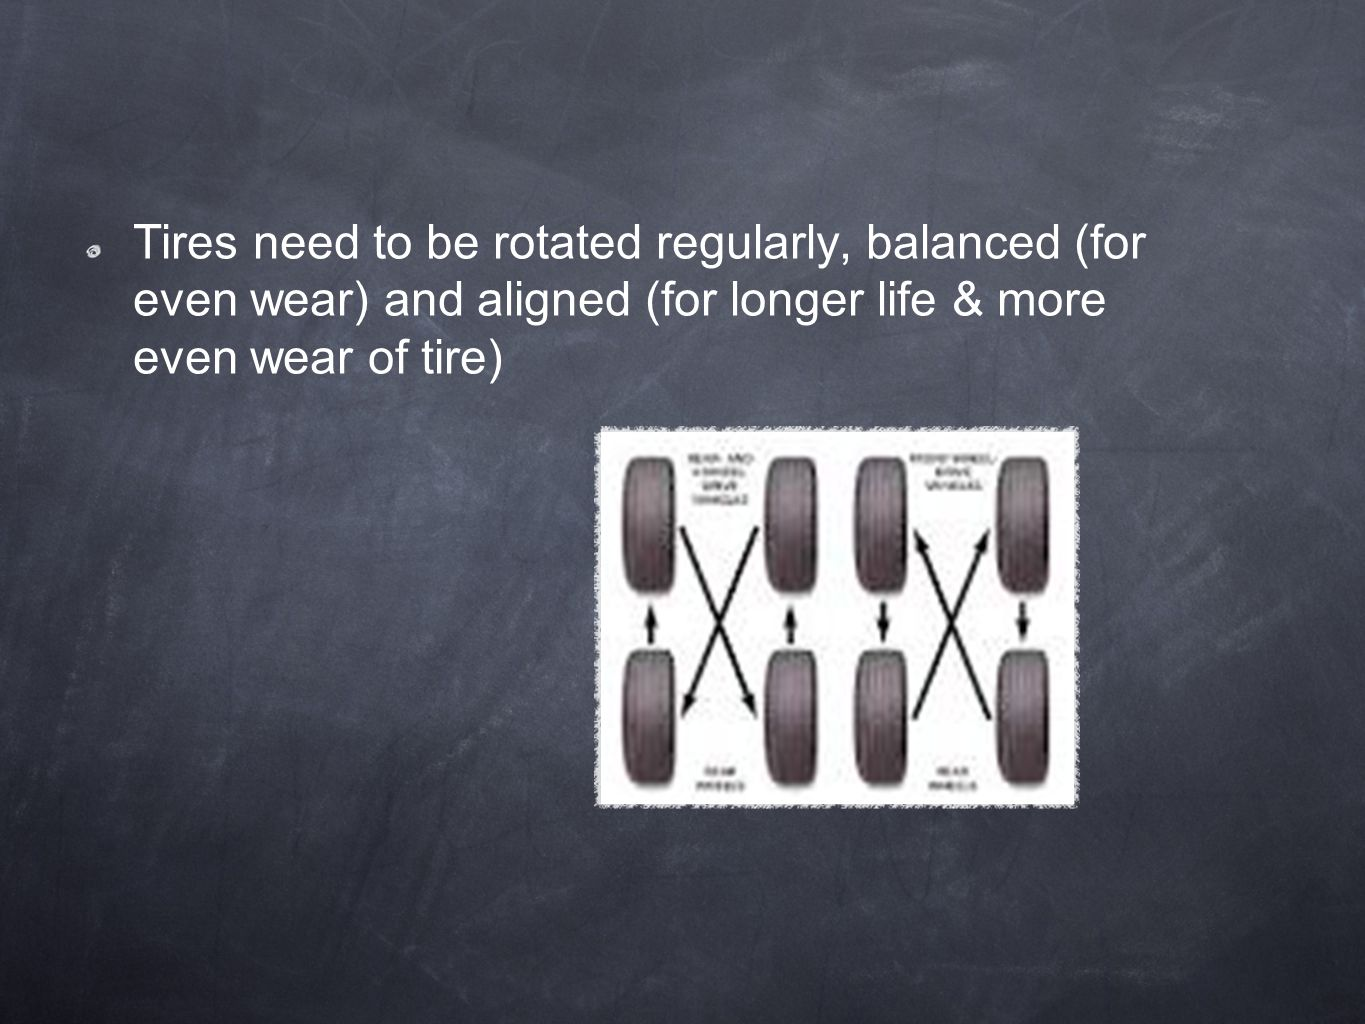 Tires need to be rotated regularly, balanced (for even wear) and aligned (for longer life & more even wear of tire)